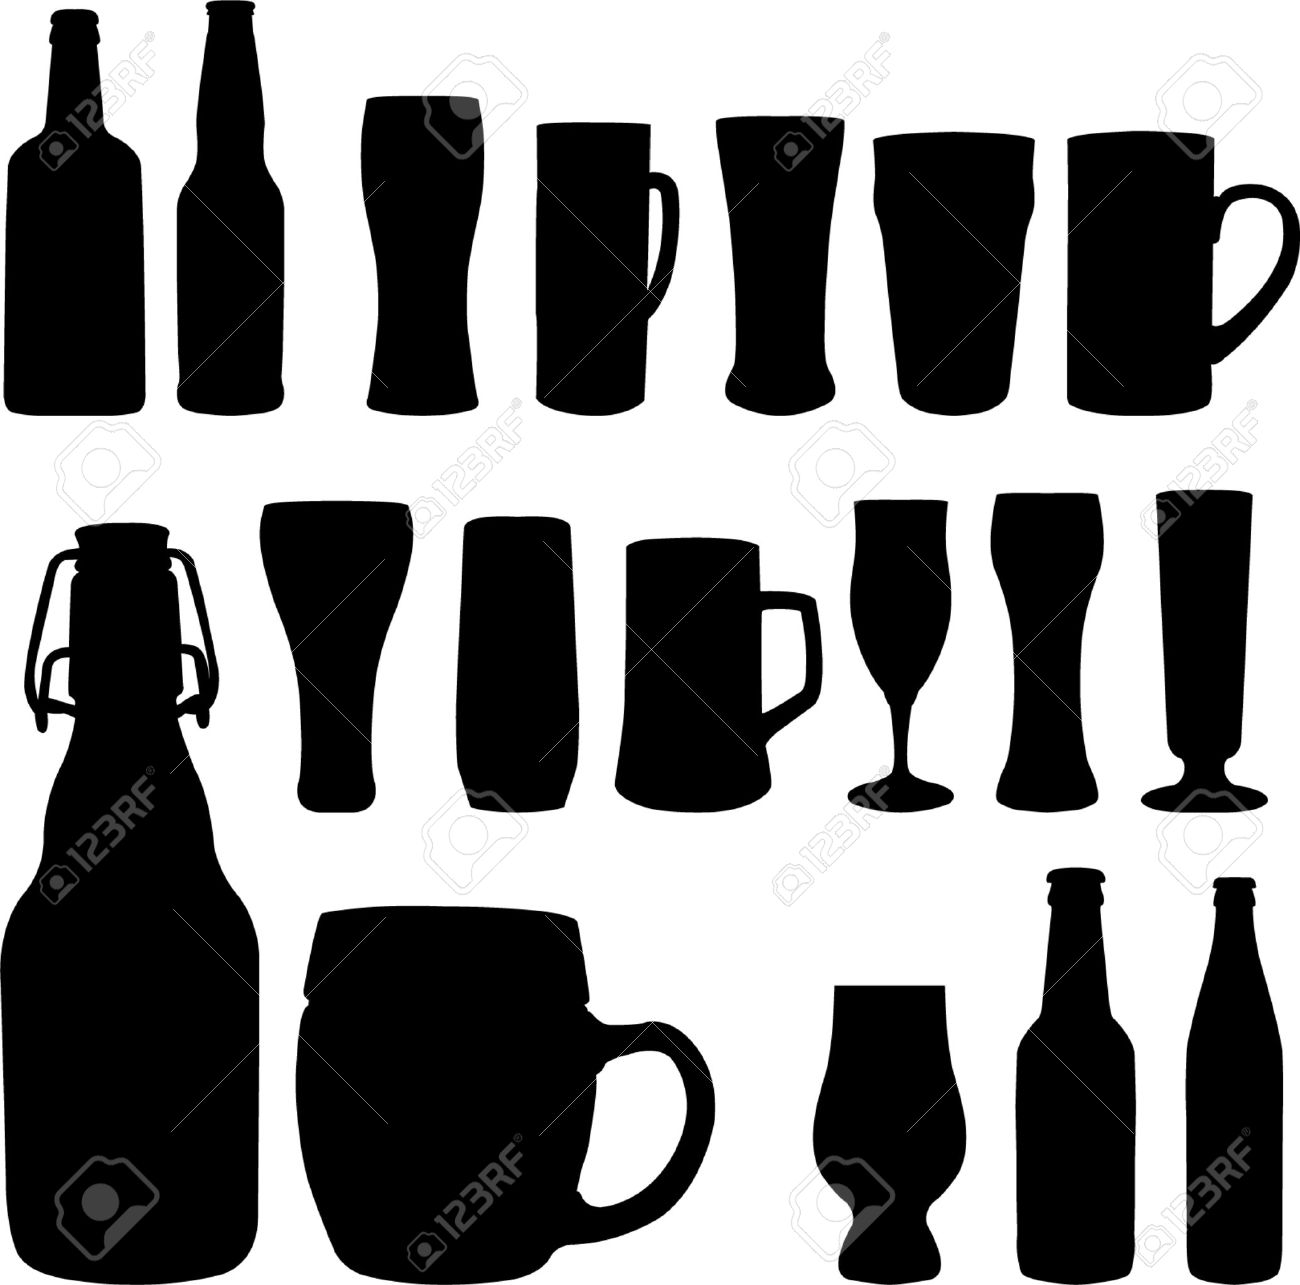 Beer clipart silhouette Beer Beer silhouette collection Clipart